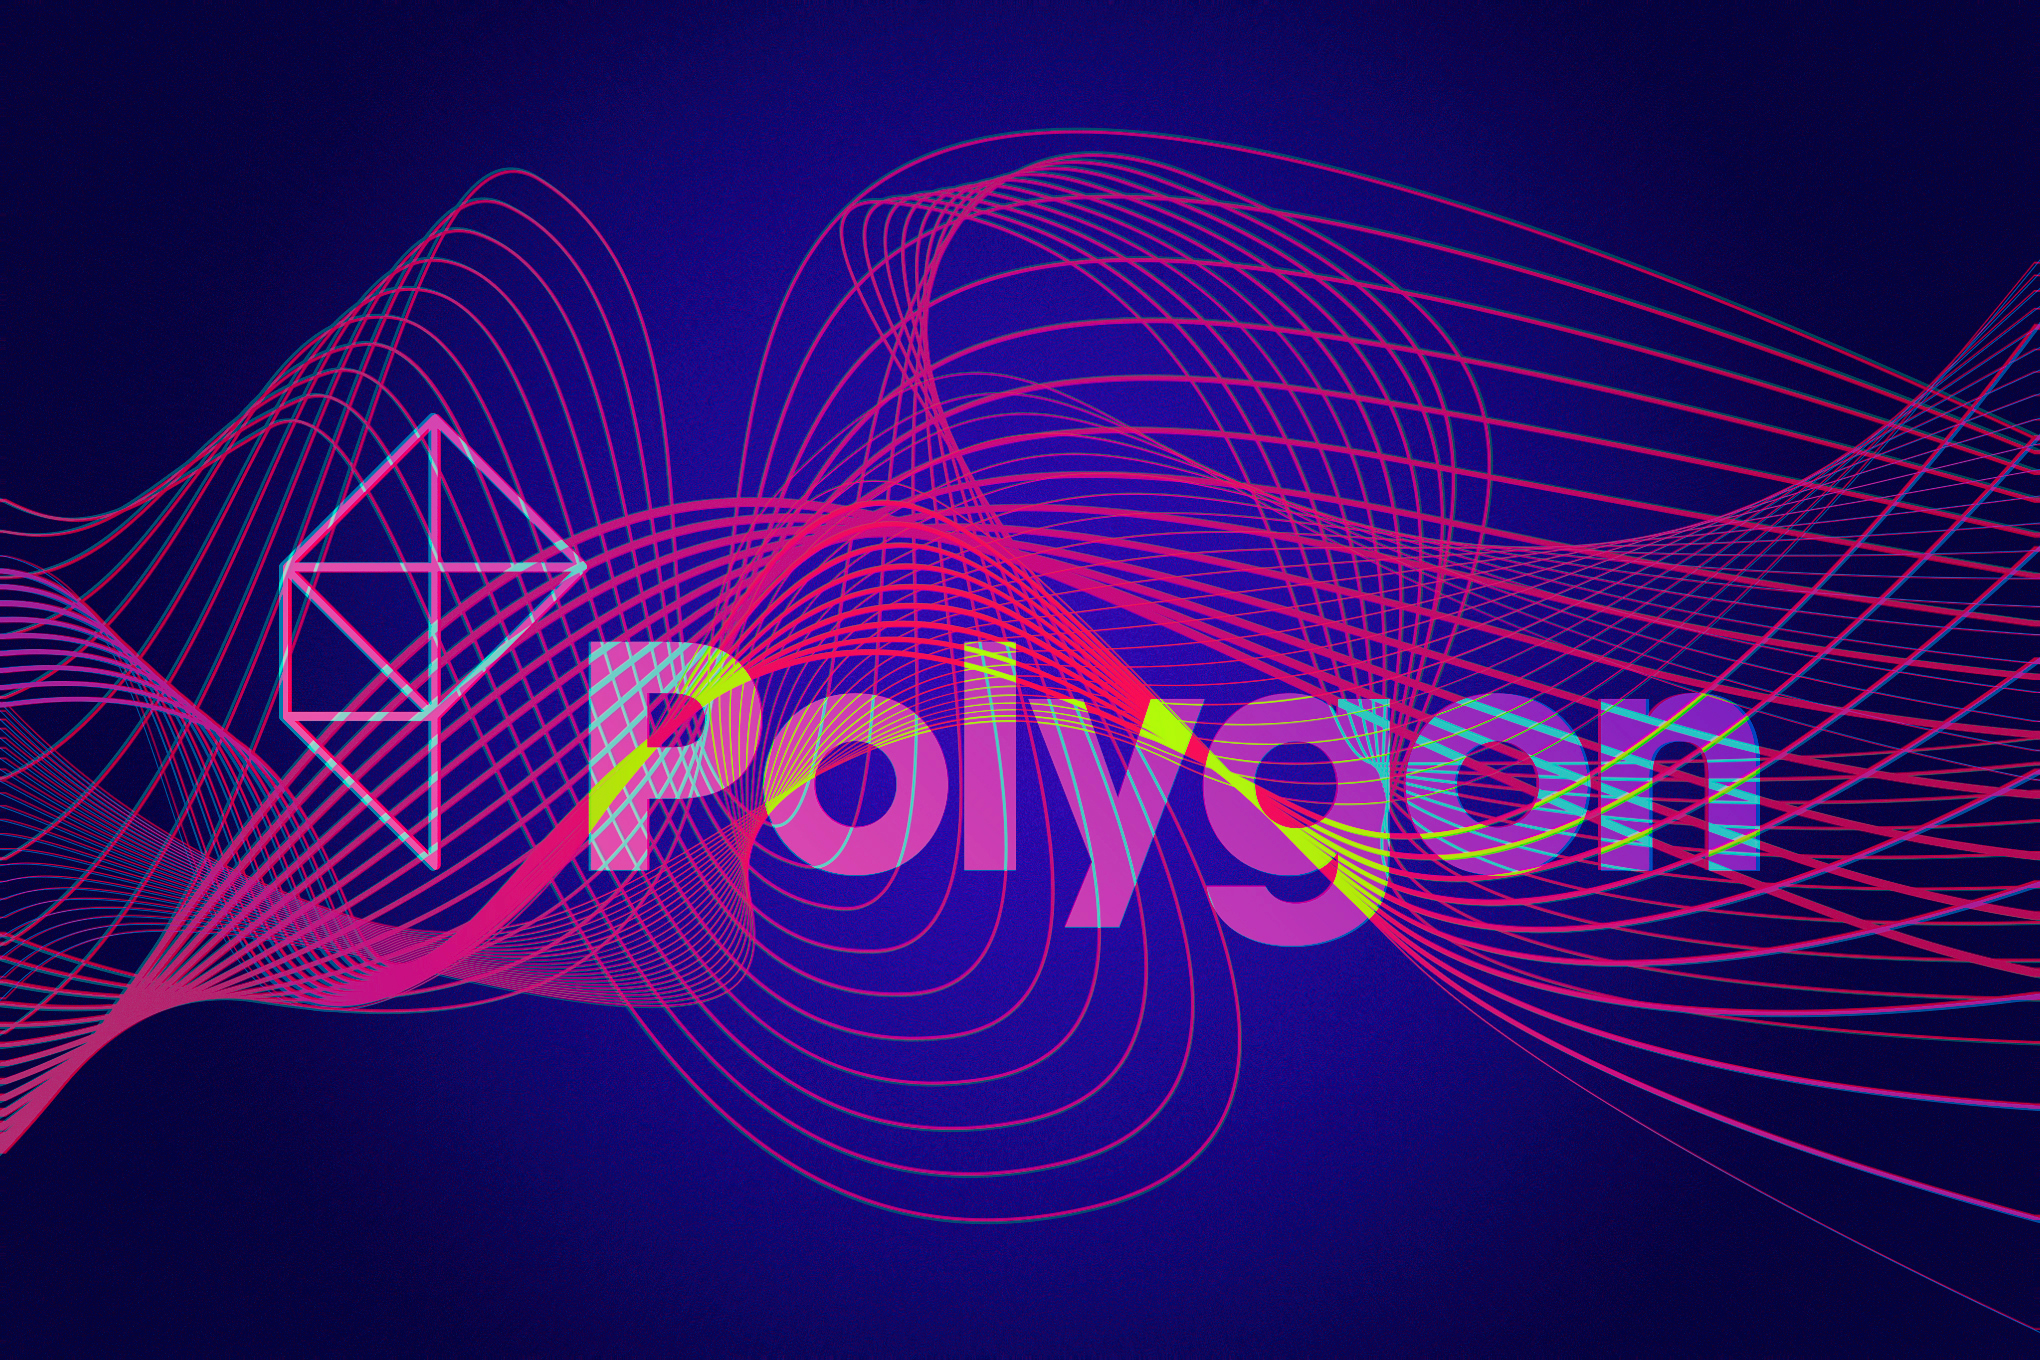 Pink Polygon logo surrounded my swirly lines